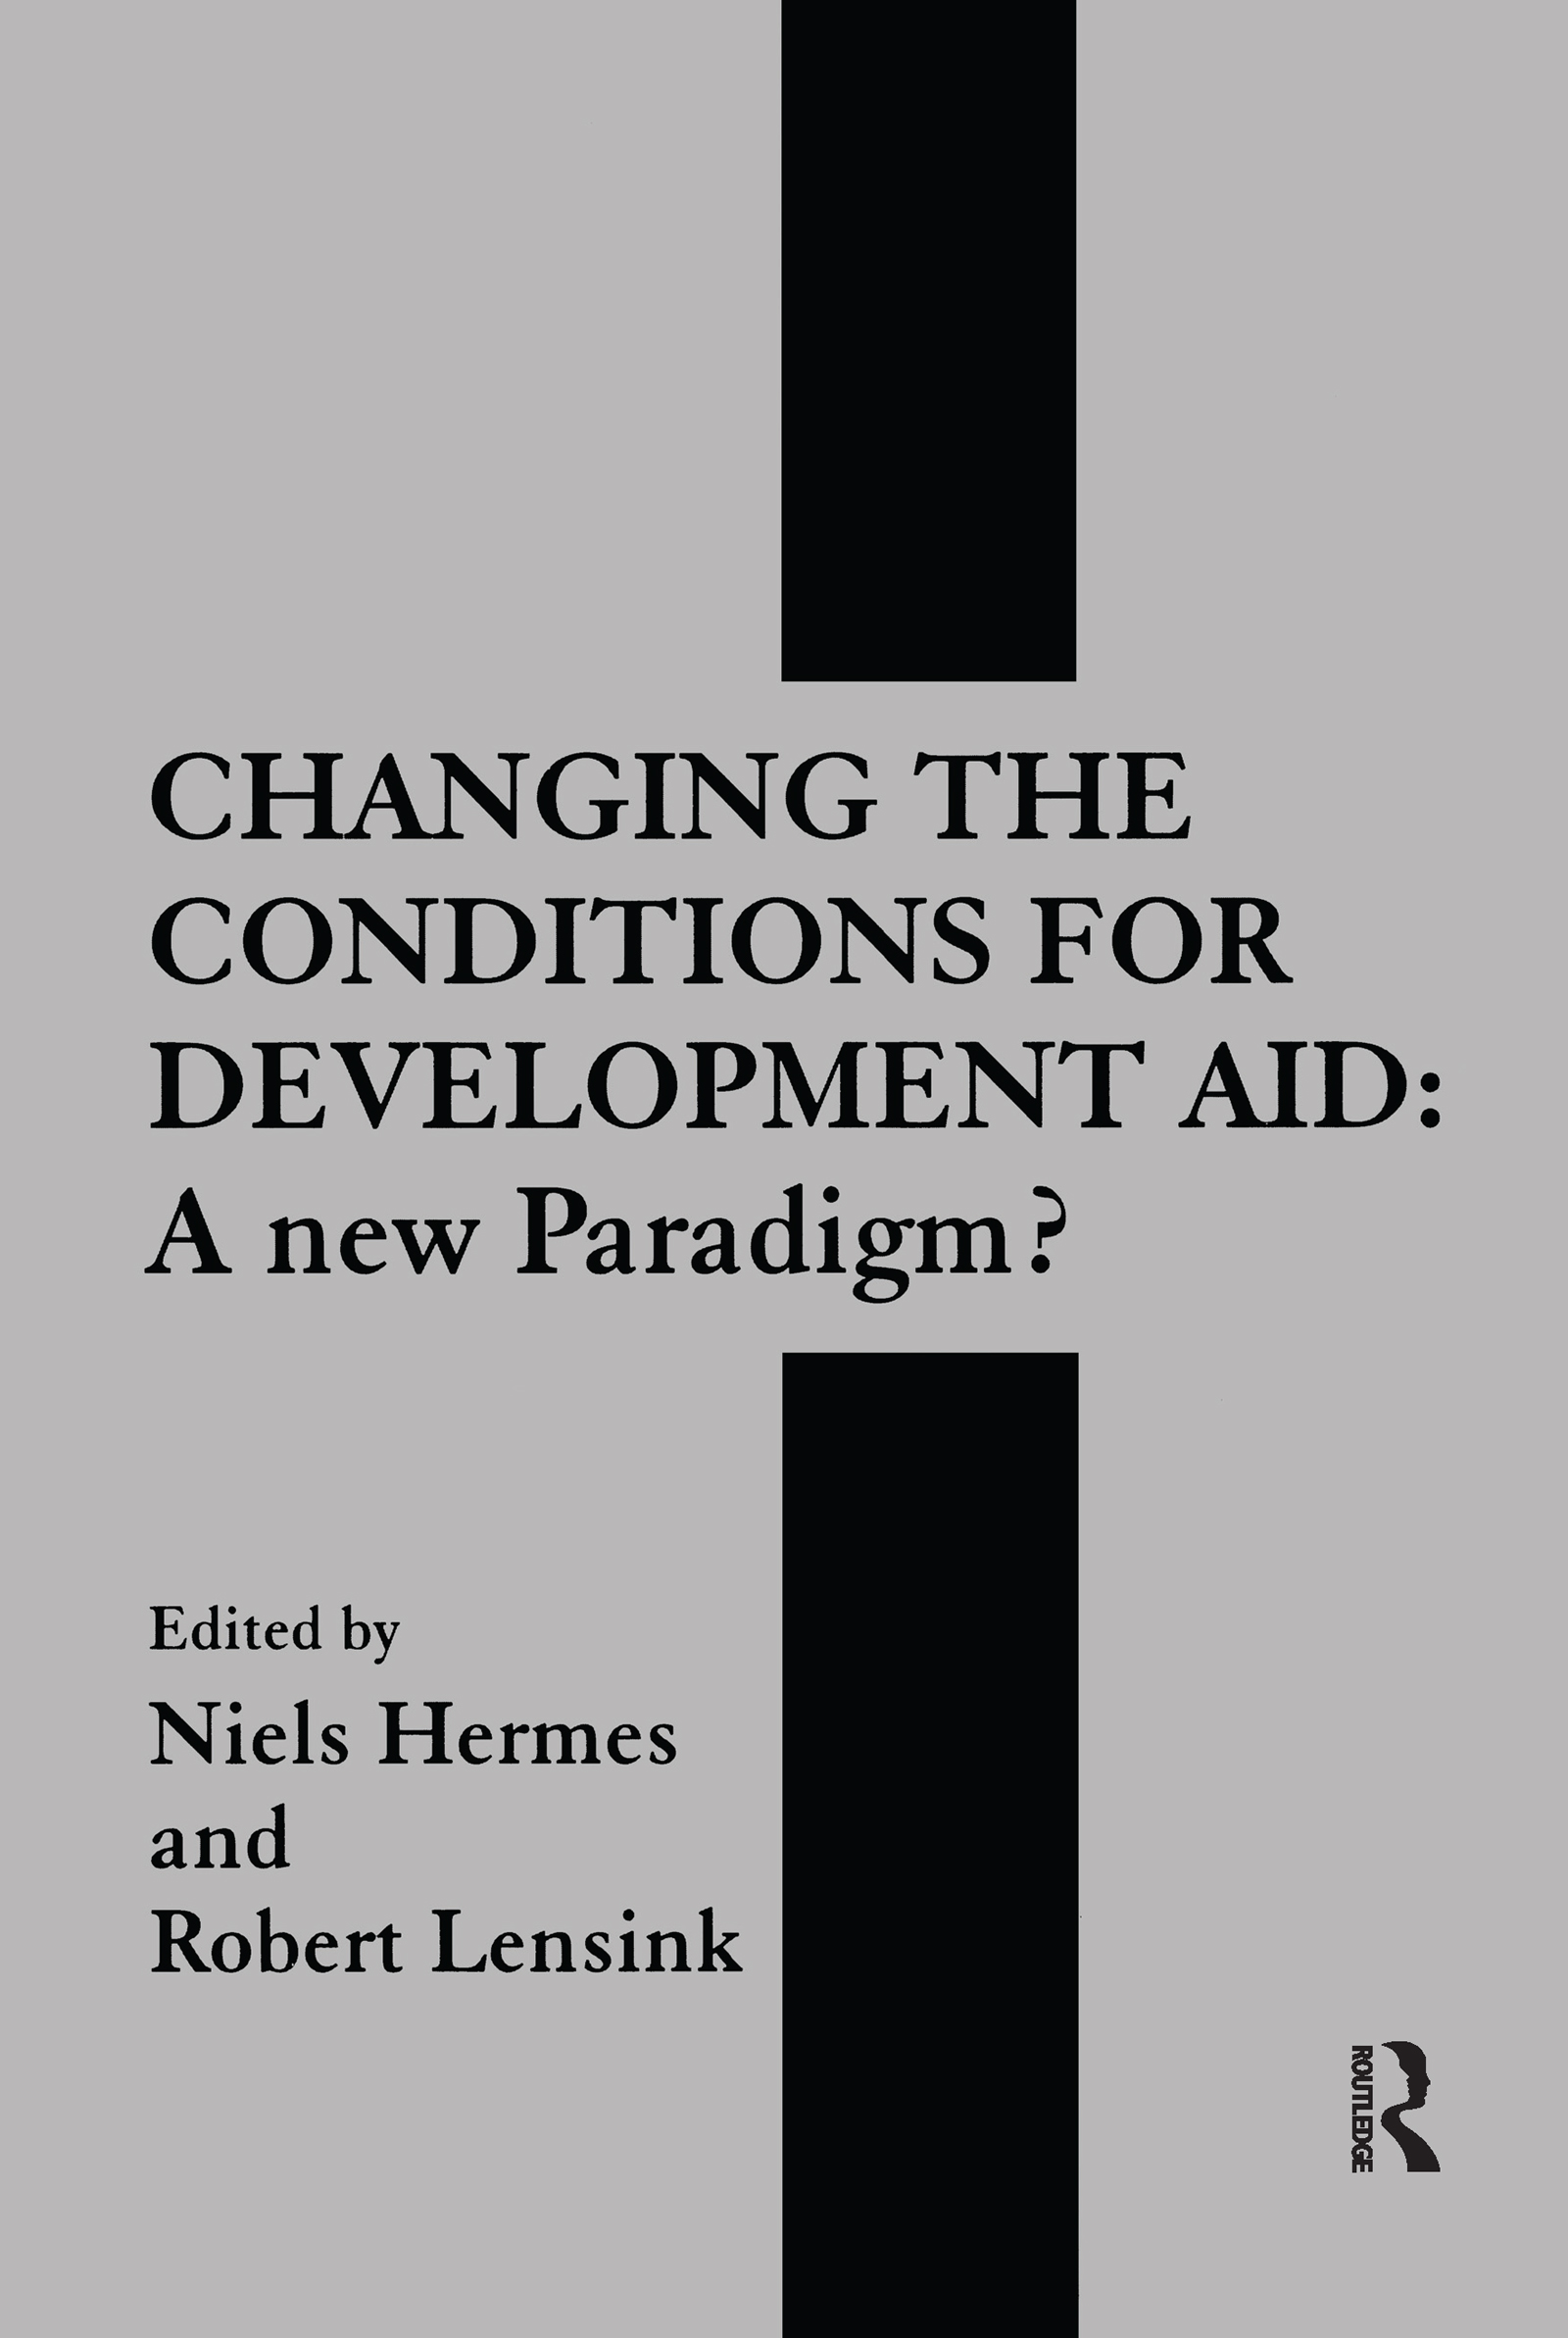 Changing the Conditions for Development Aid: A New Paradigm? book cover